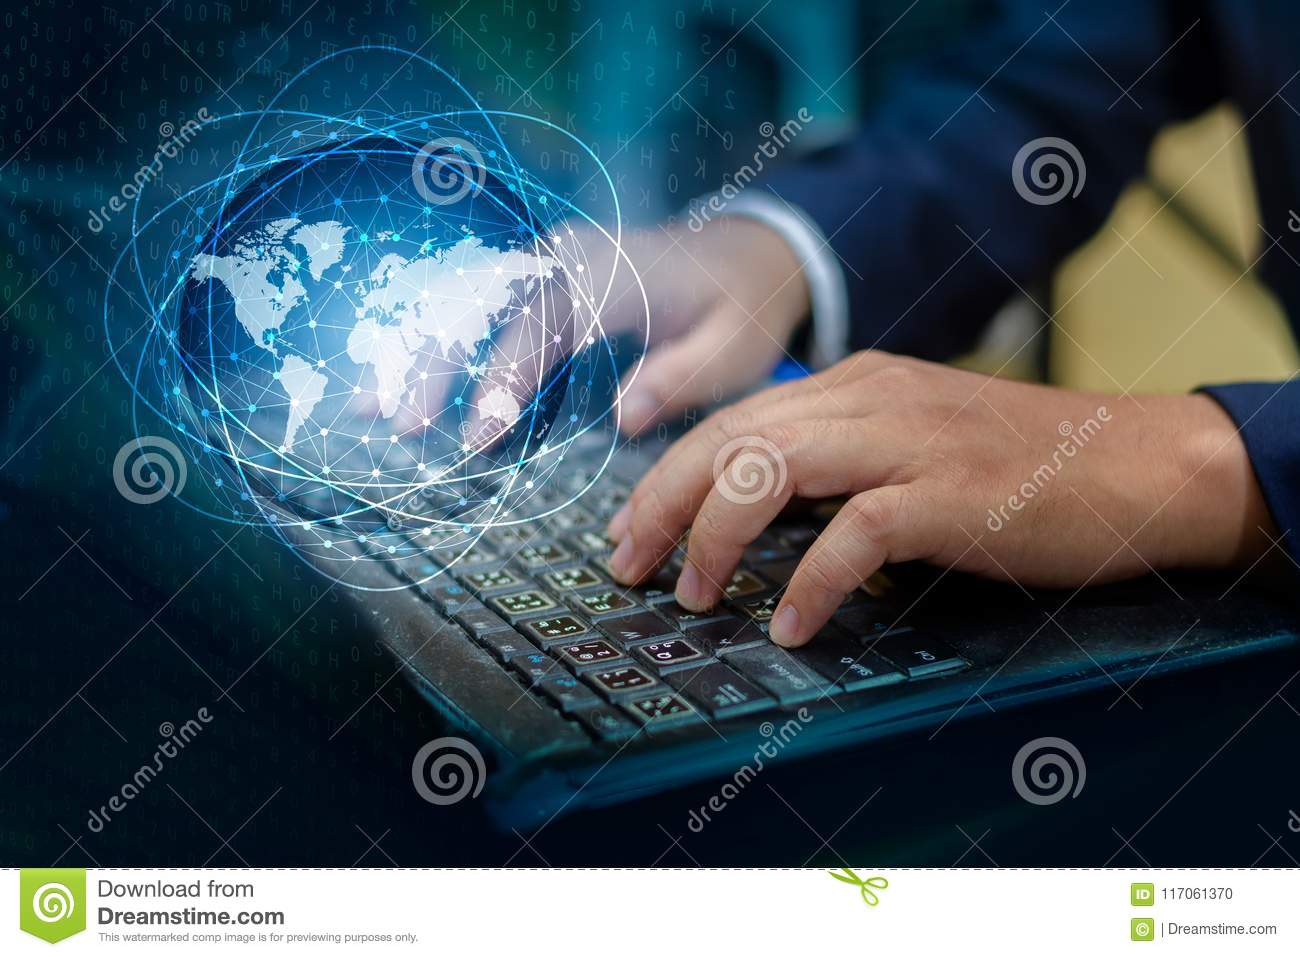 Press enter button on the computer. business logistics Communication network World map send message Connect worldwide hand keyboar